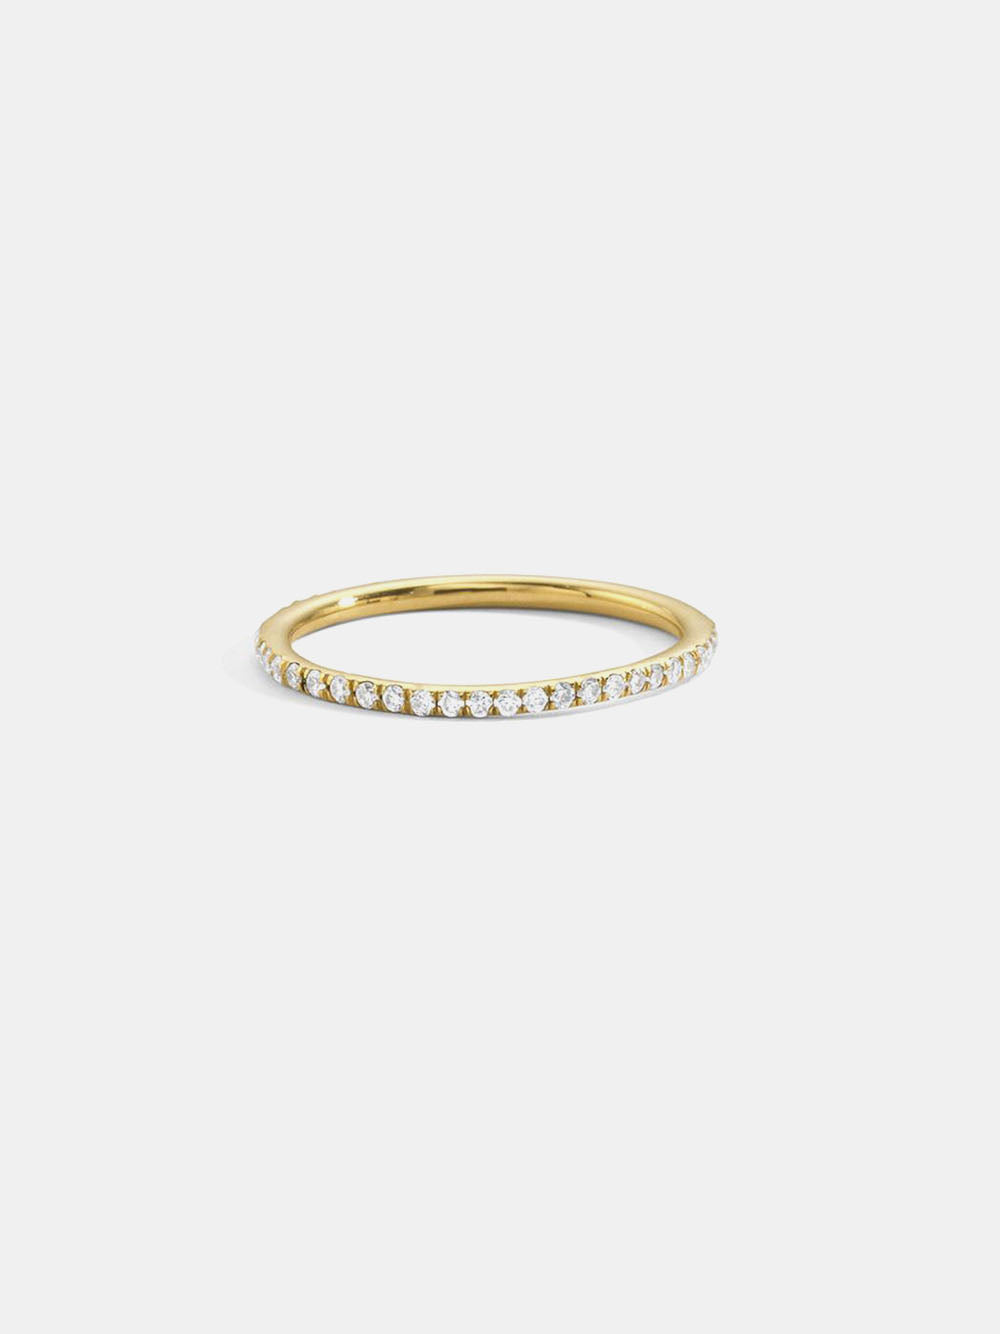 blanca monrós gómez slim eternity band